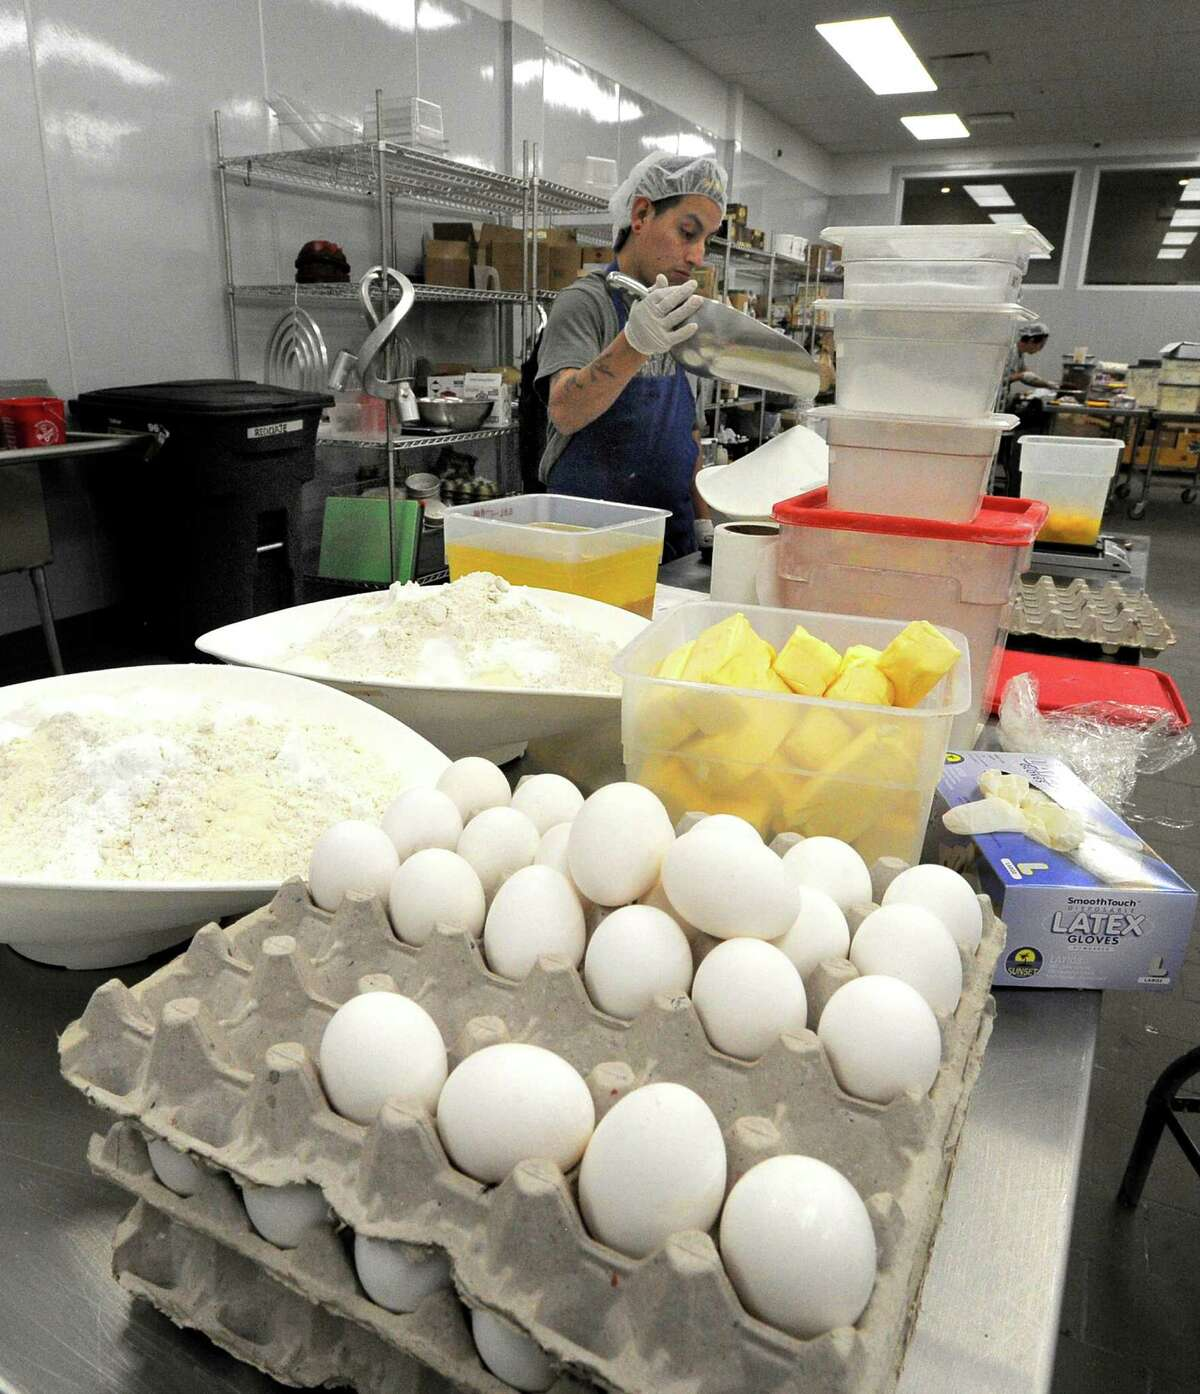 Ruben Martinez prepares ingredients for tasty gluten free kosher bakery goods at By The Way Bakery new state of the art facility in Pleasantville, New York on Tuesday, Oct. 11, 2016.